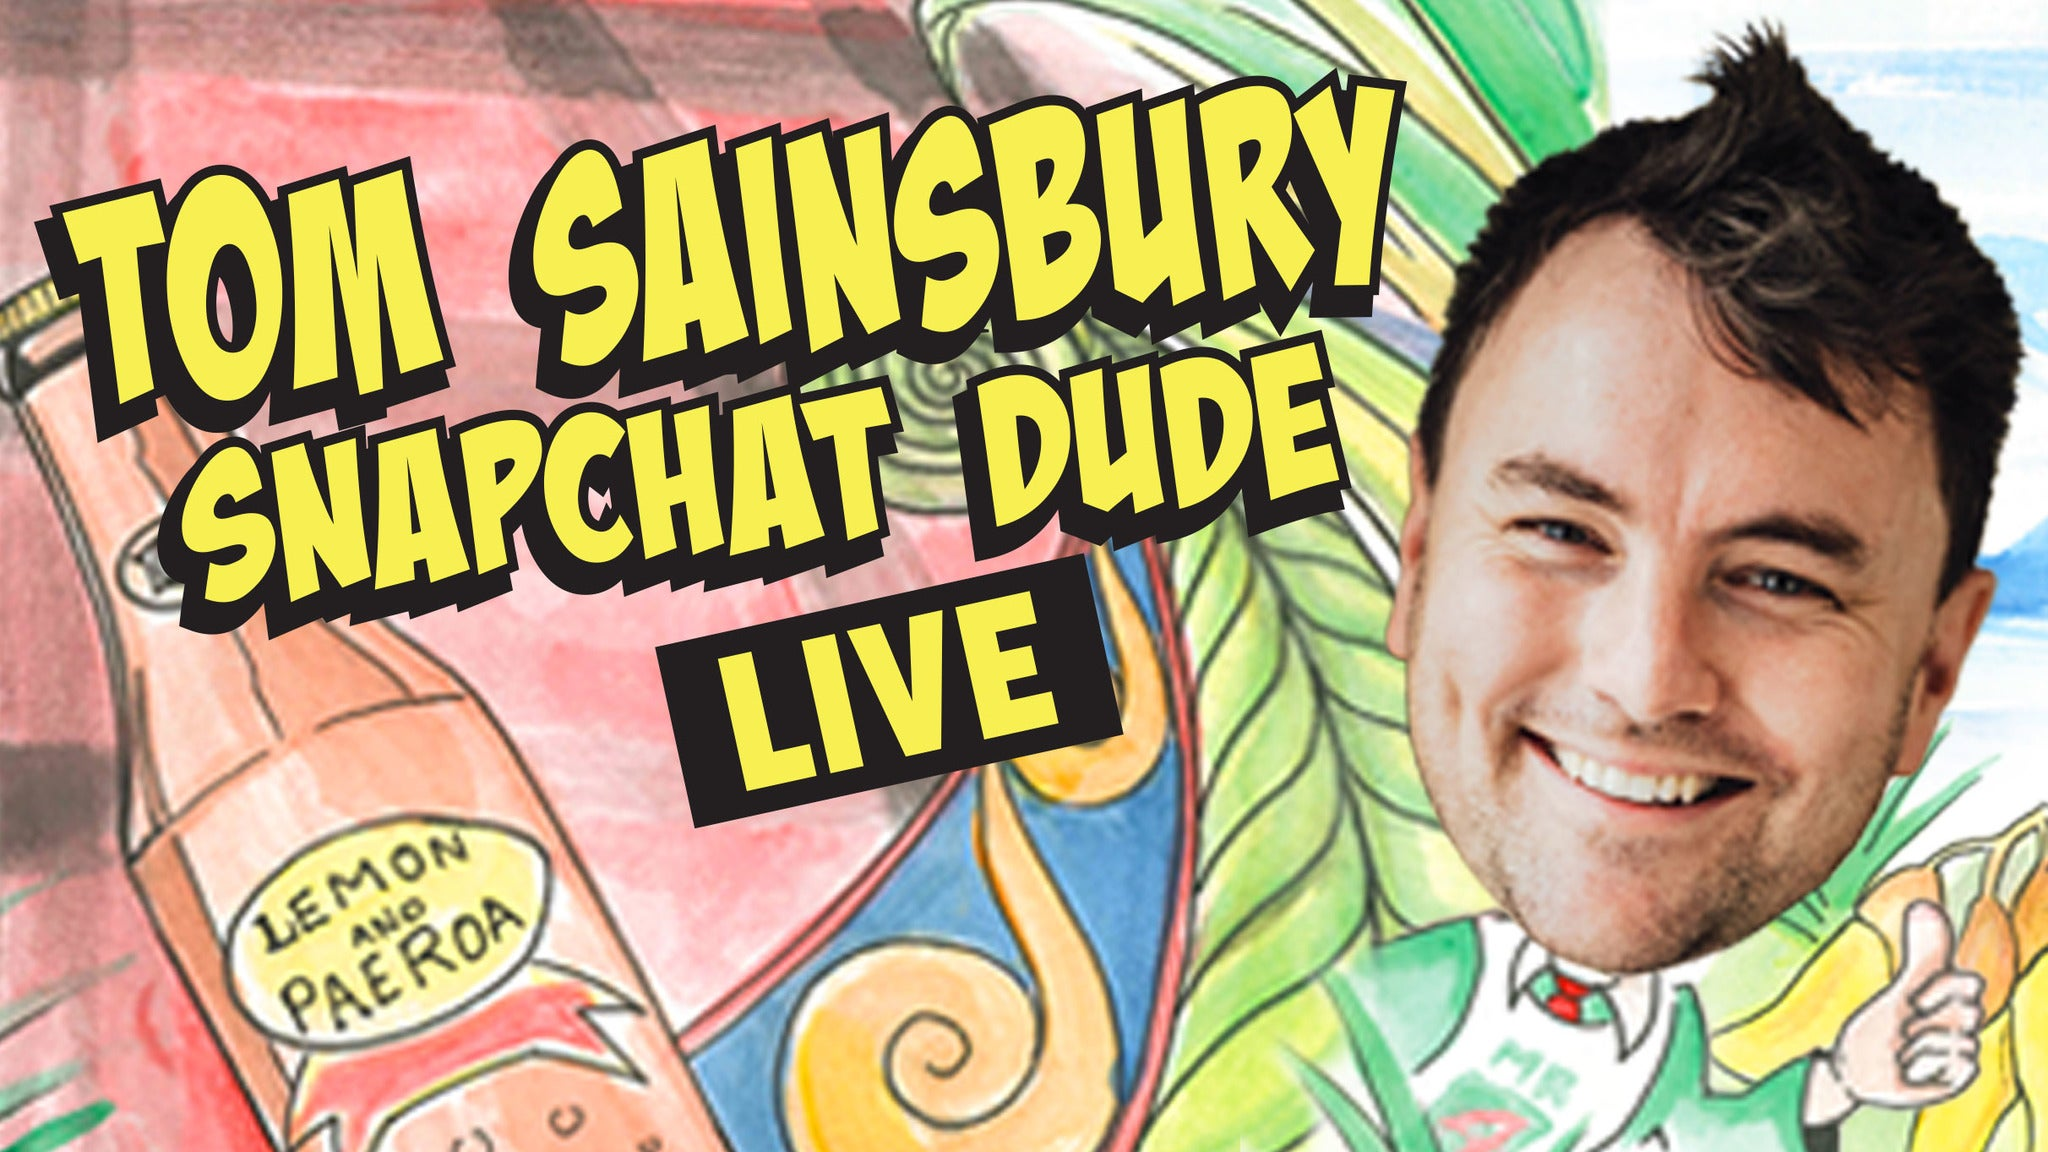 Image used with permission from Ticketmaster | Tom Sainsbury - Snapchat Dude Live tickets